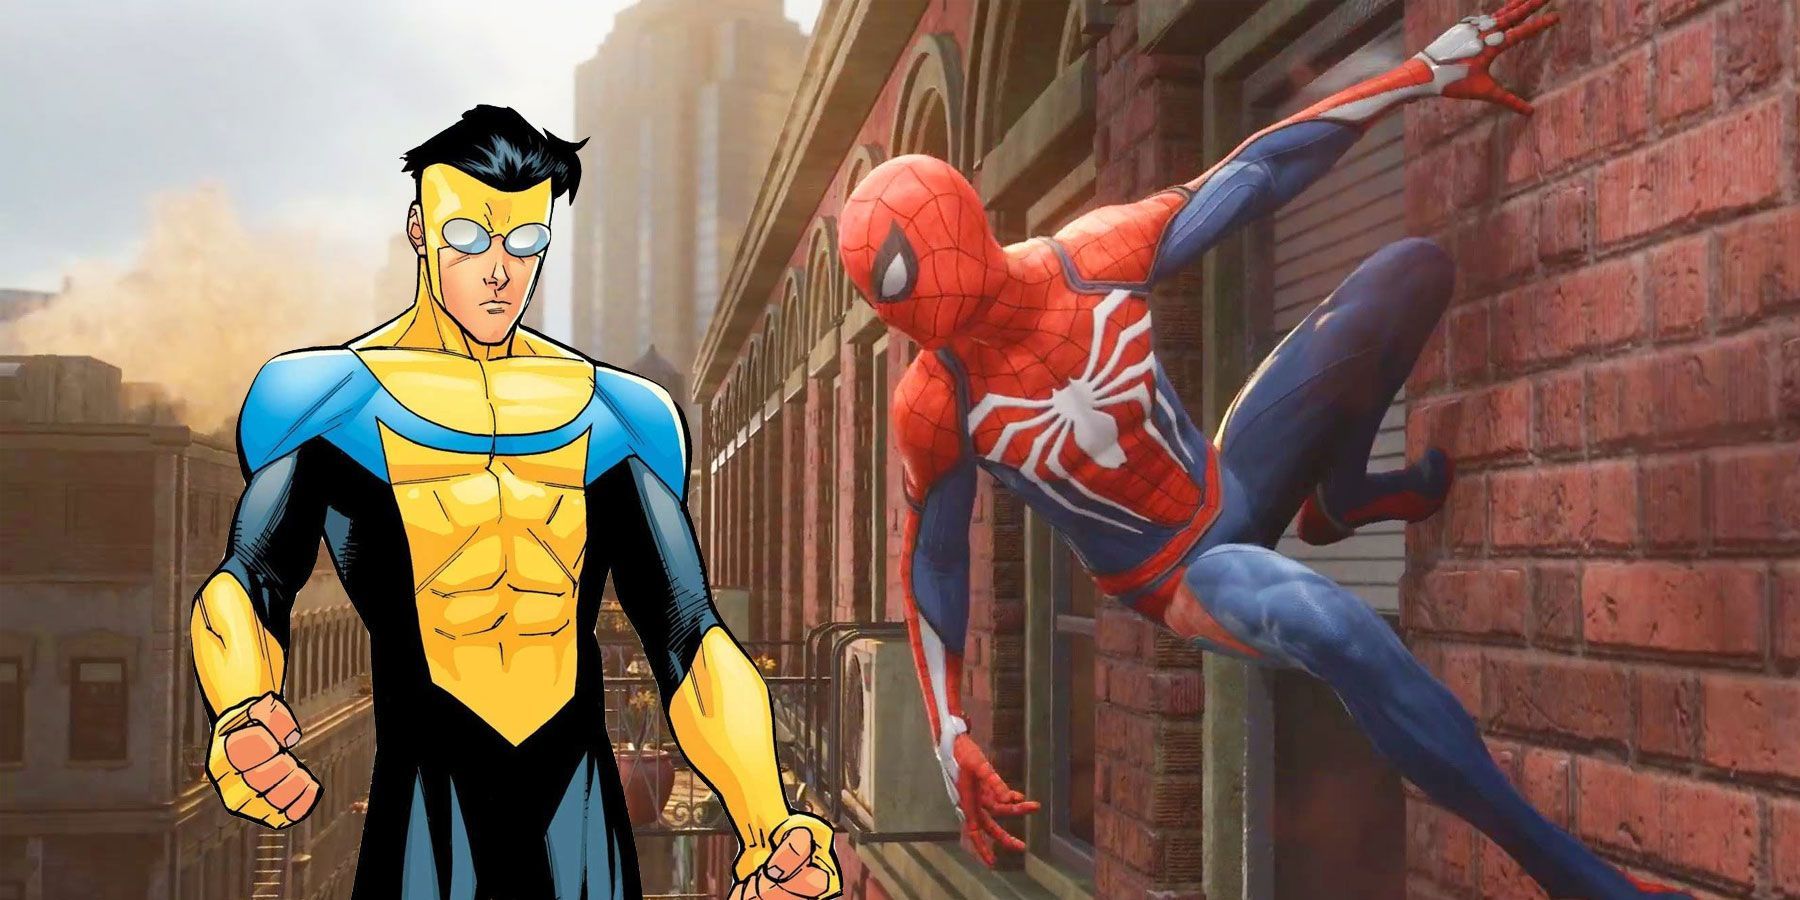 An Invincible Game Could Be An M-Rated Marvel's Spider-Man